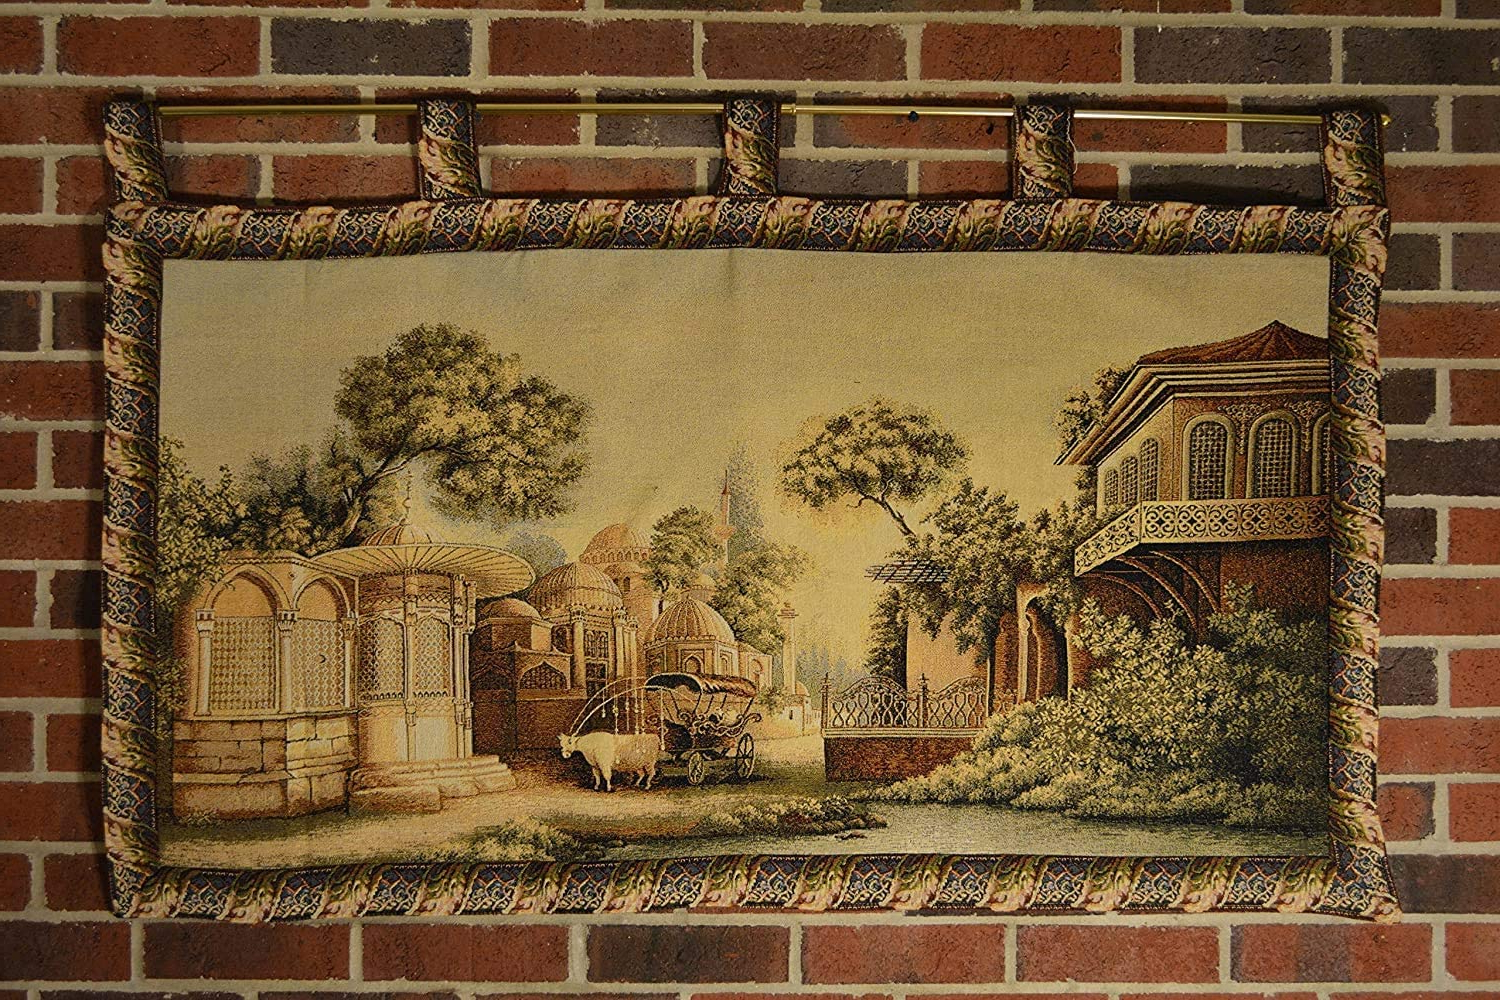 Well Known Blended Fabric Faraway Longing Wall Hangings Within Tache 27x49 Inches Exotic Persian Nice Day Out Large Tapestry Jacquard Wall Hanging Art Decor (View 7 of 20)